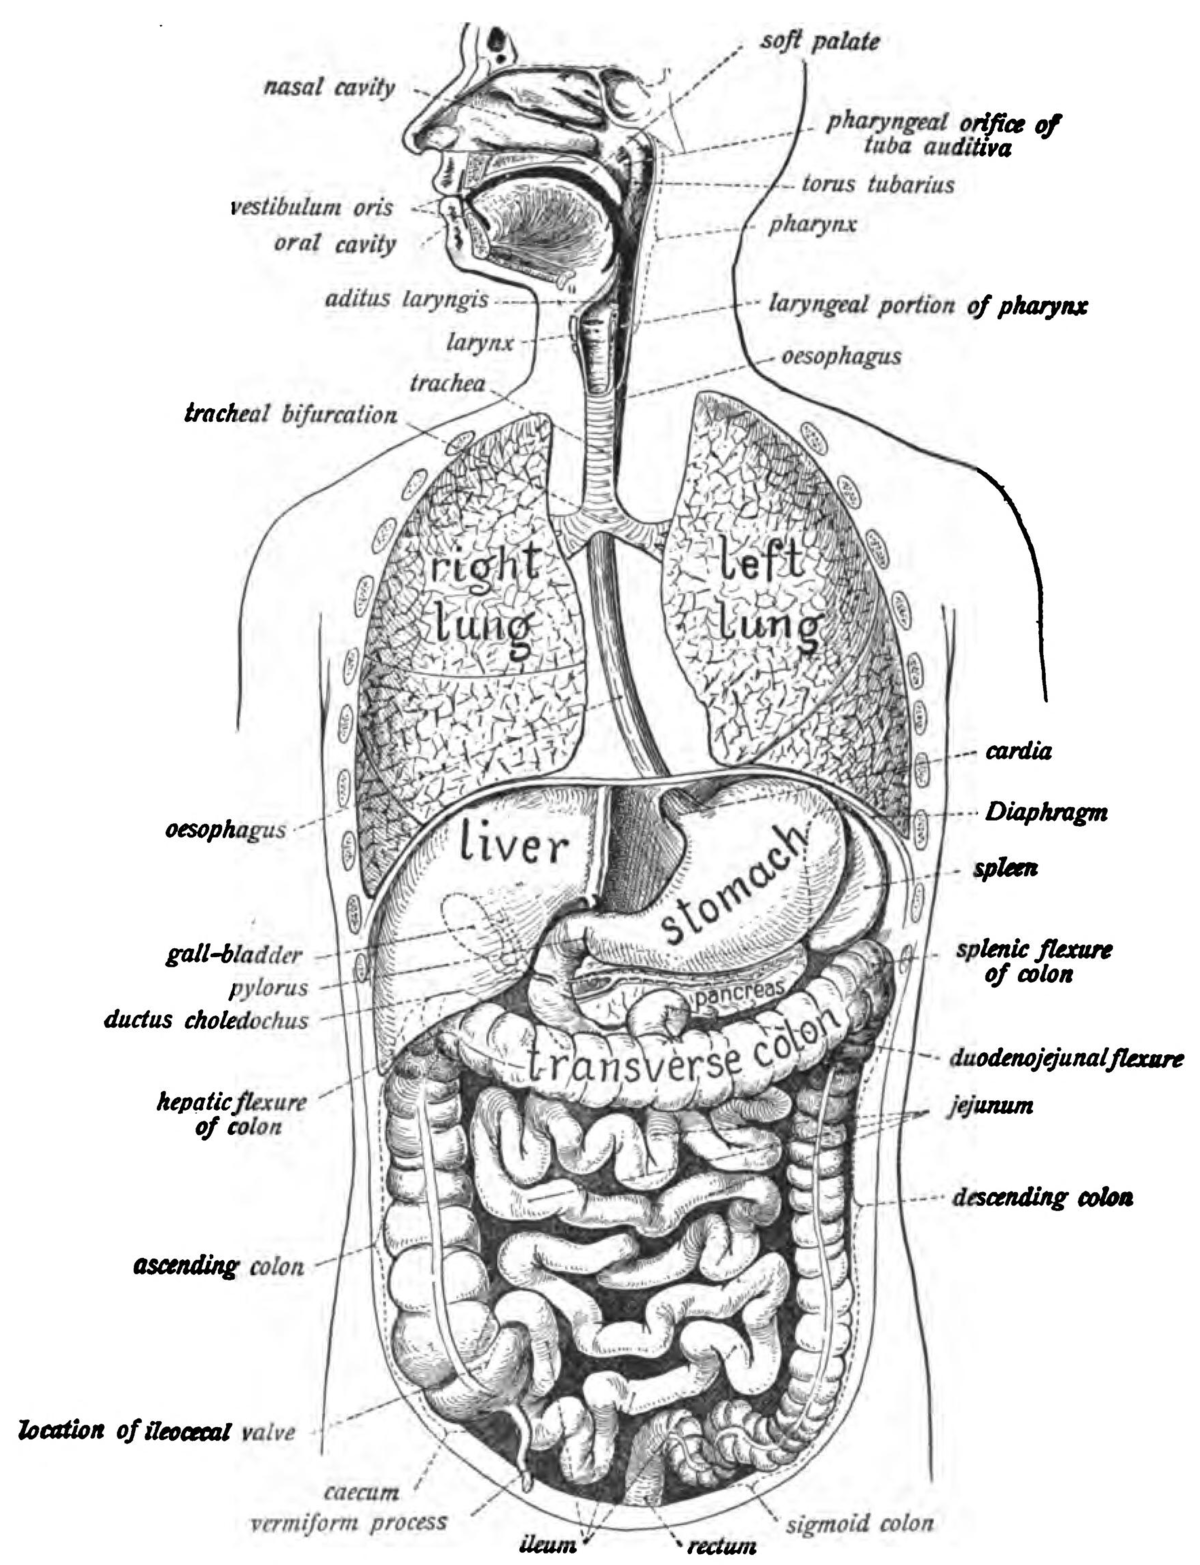 Anatomy of the gastrointestinal system